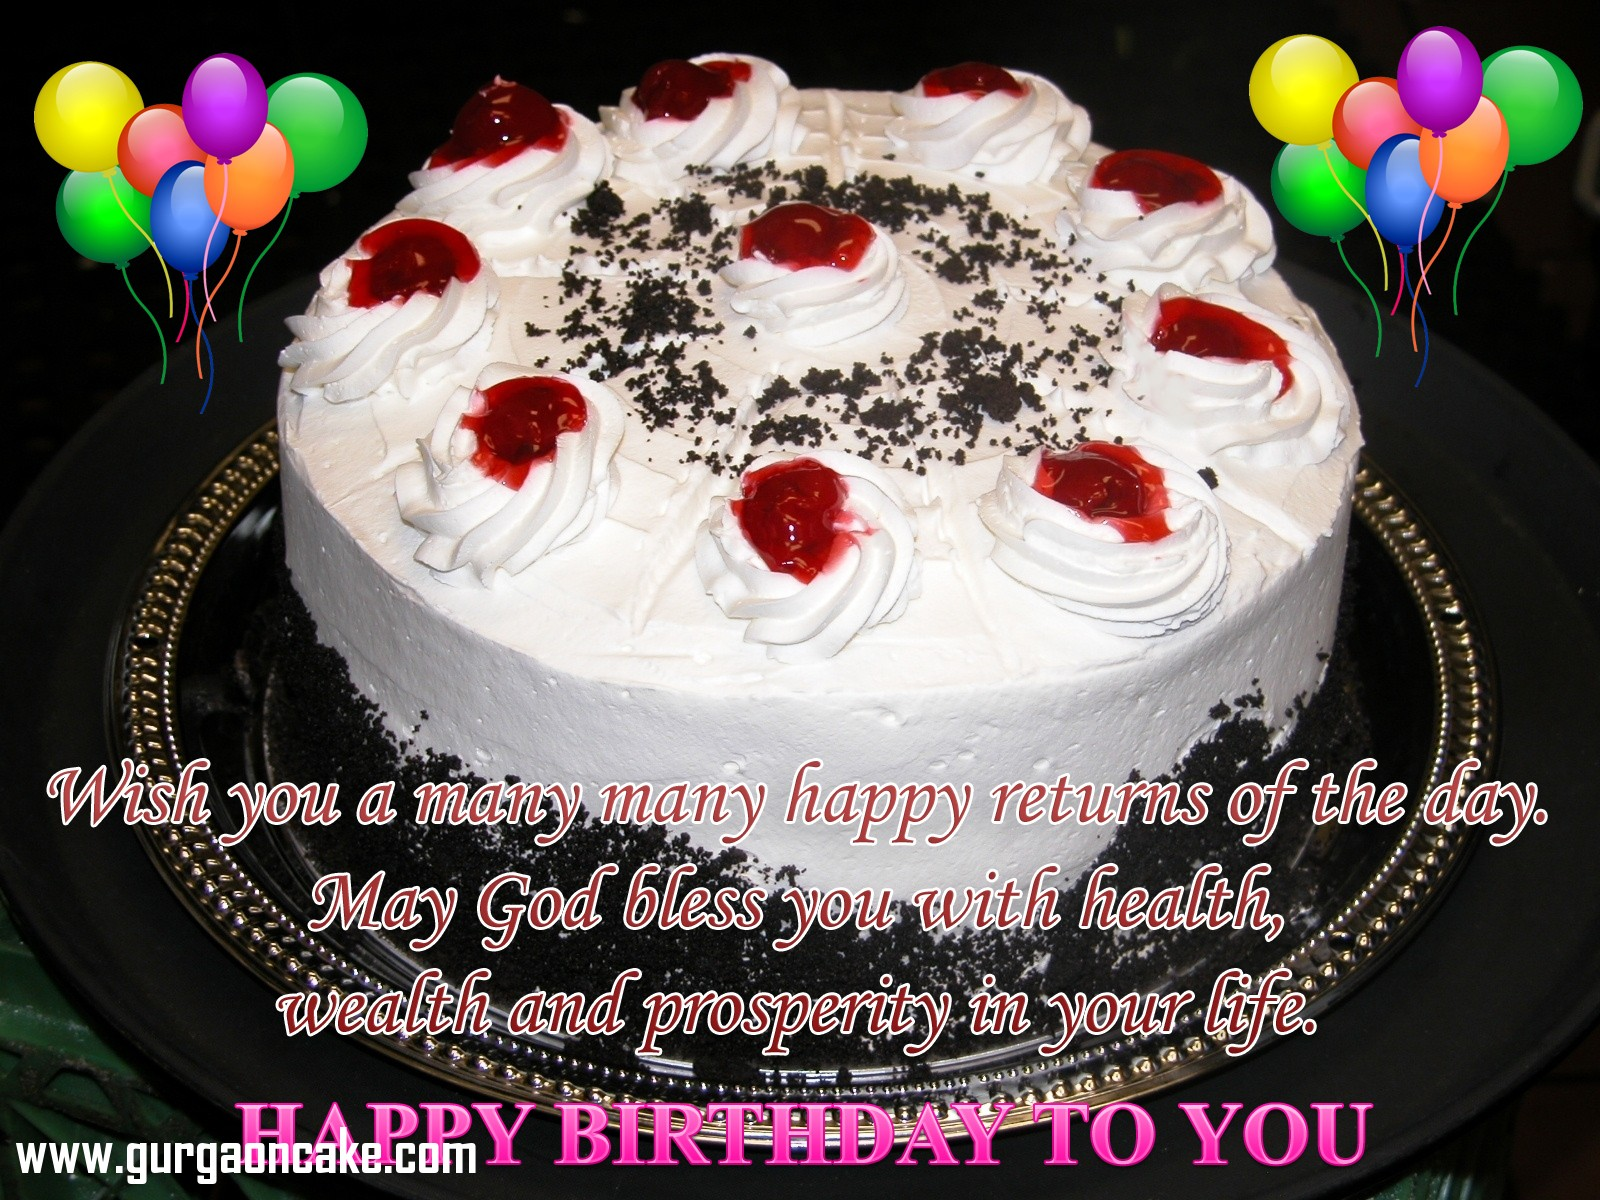 birthday cake with message picture ; message-on-cake-for-husbands-birthday-best-birthday-message-for-husband-ideas-on-pinterest-of-message-on-cake-for-husbands-birthday